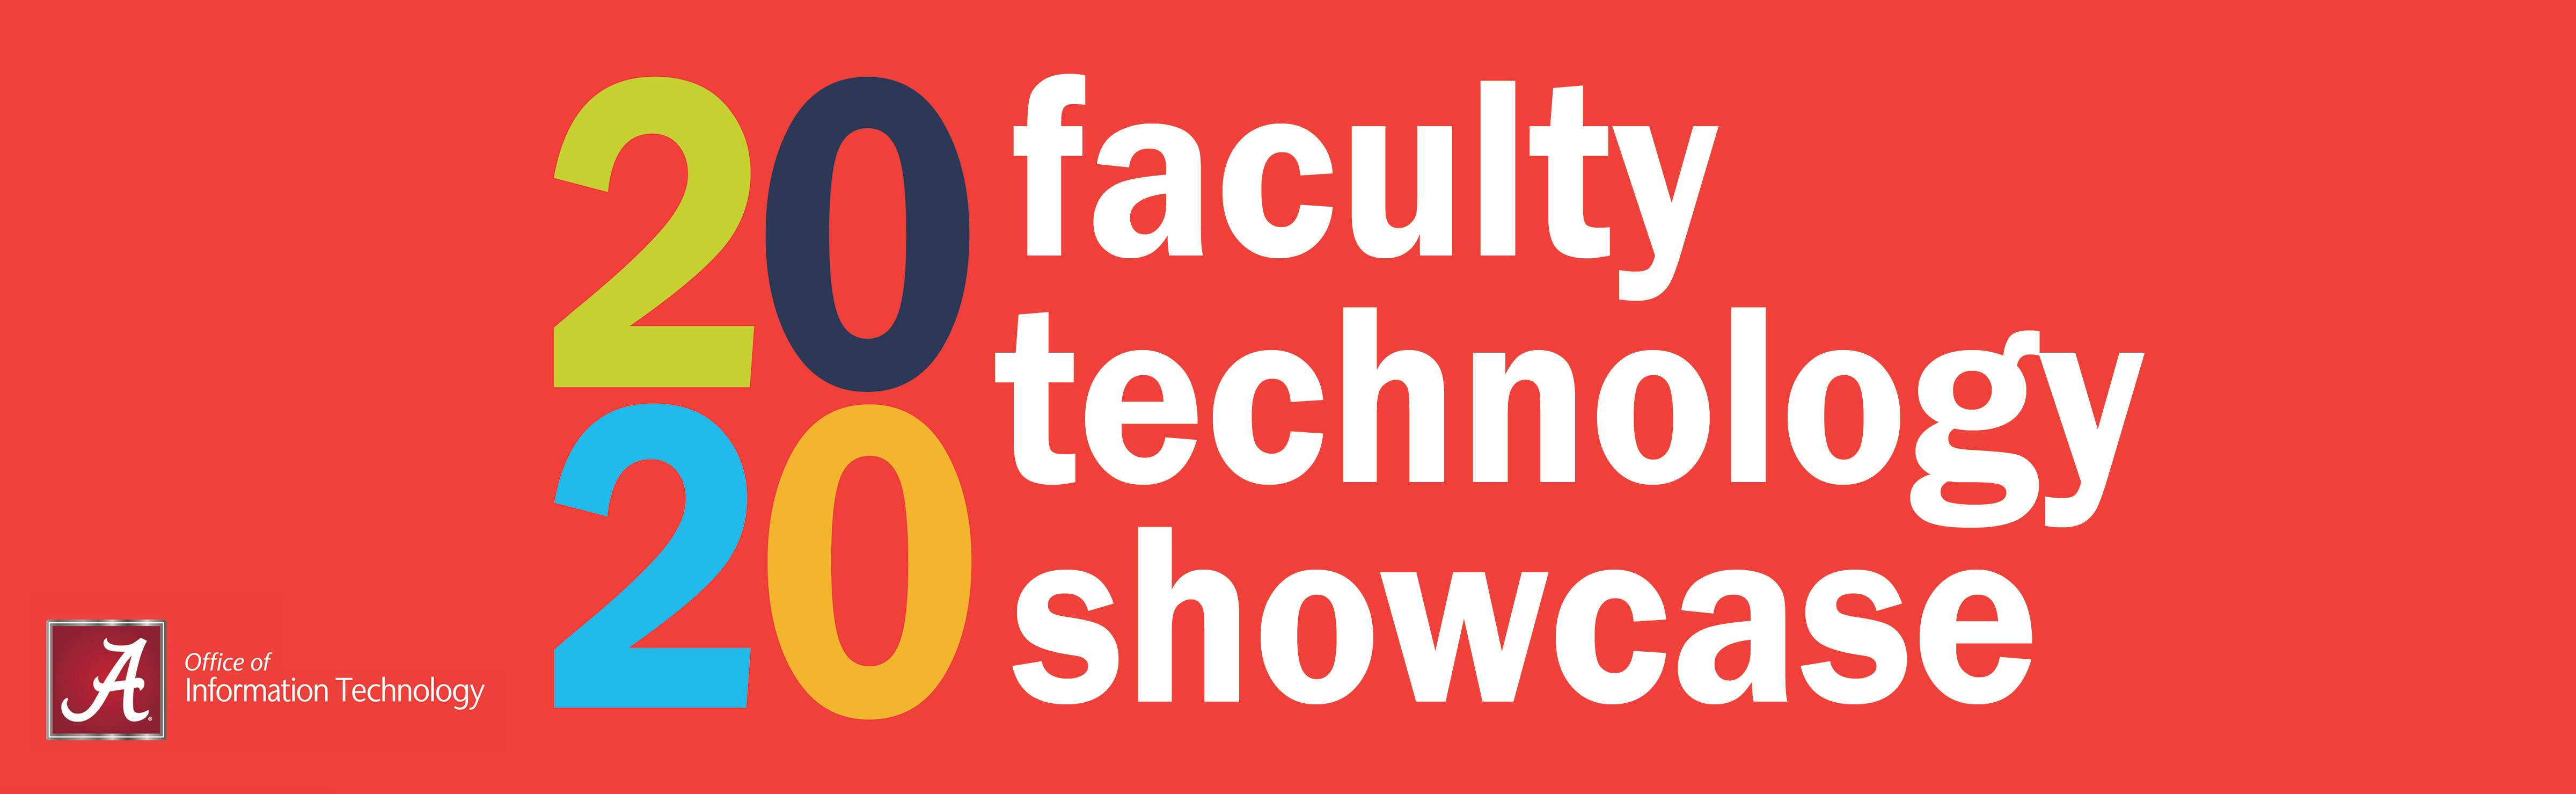 2020 Faculty Technology Showcase Banner with Office of Information Technology wordmark